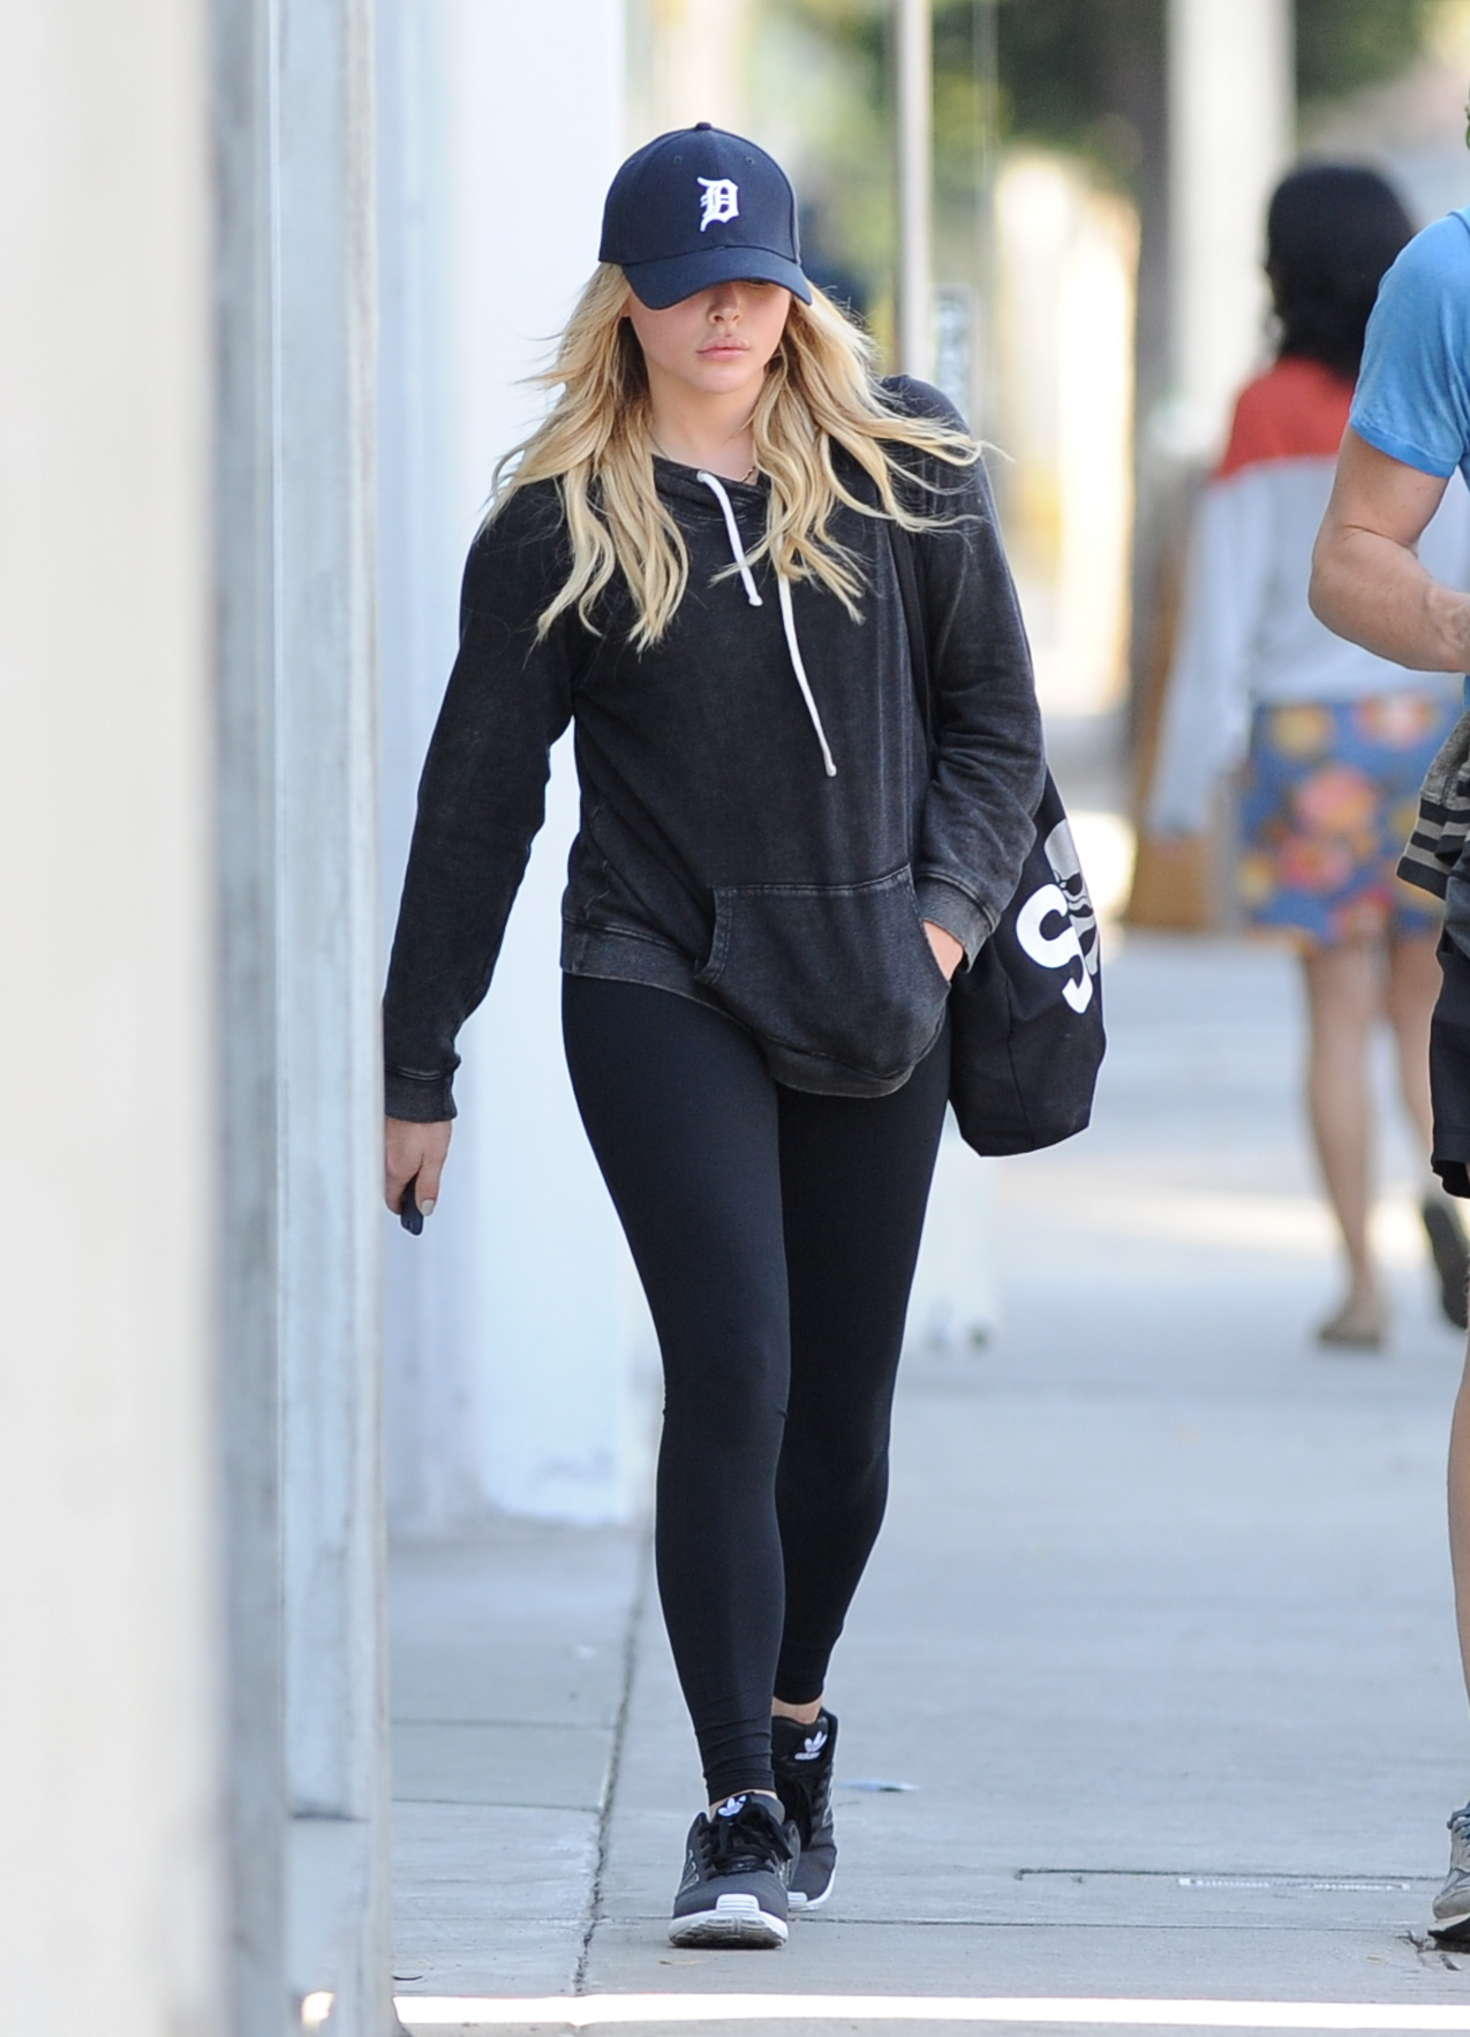 Chloe Moretz - Leaving Pilates class at Y7 Studio in West Hollywood